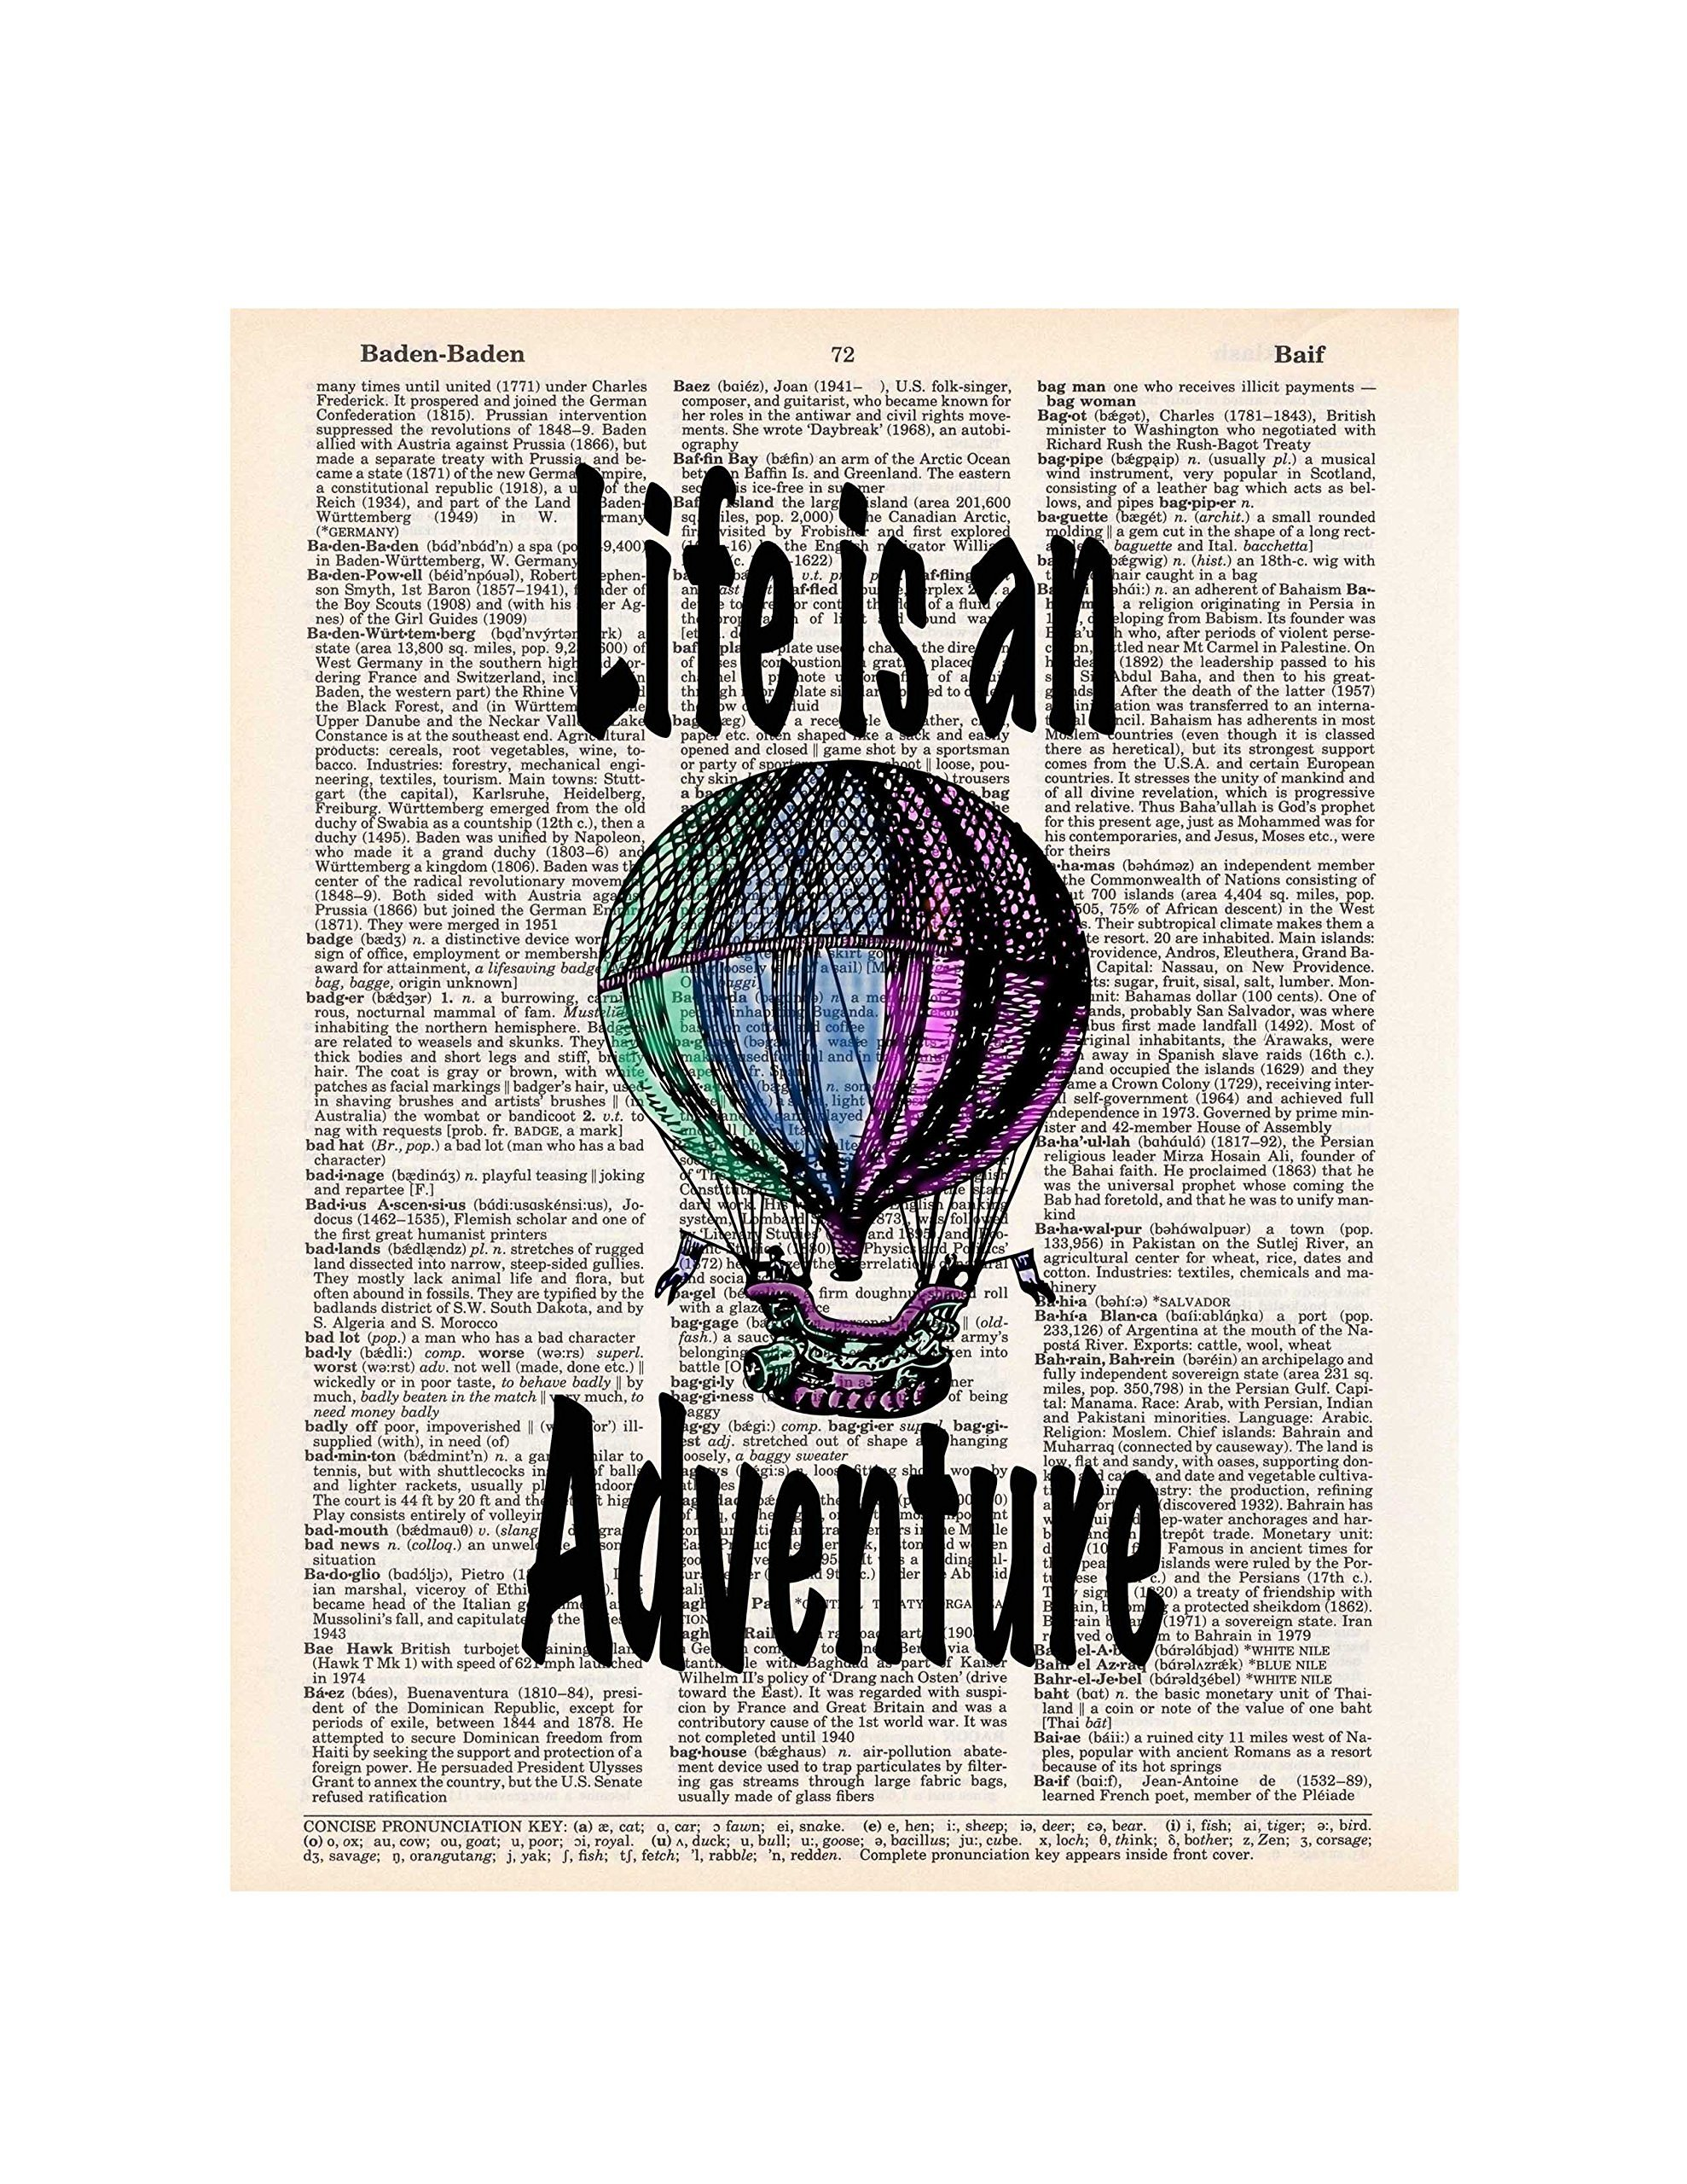 Hot Air Balloon, Life is an Adventure, Travel Wall Art, Dictionary Page Photo Print, 8x10, Unframed 3